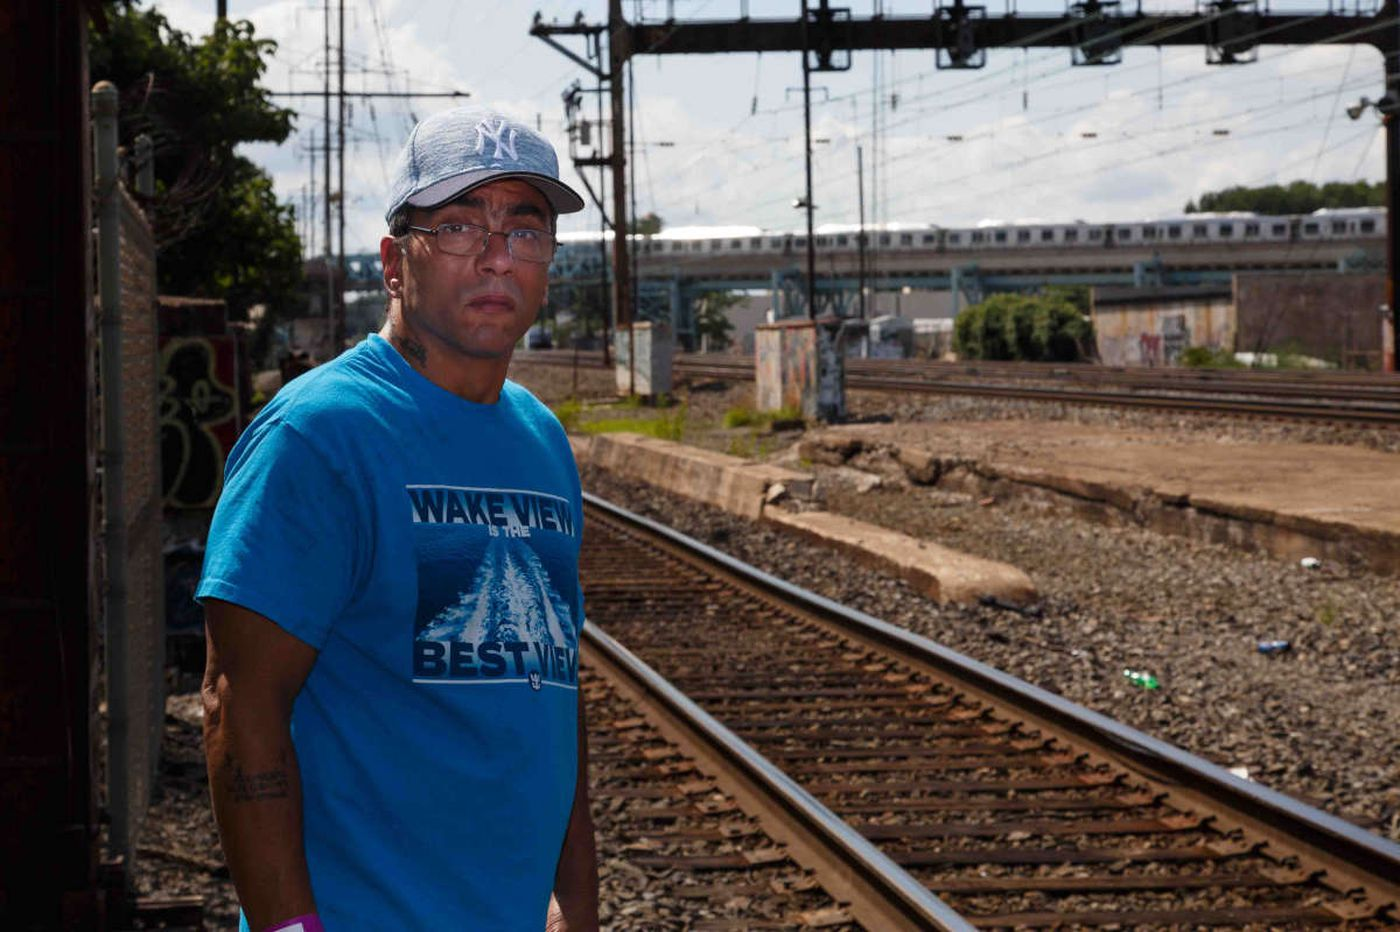 Danger on the tracks: 2 Philly kids lose legs in train accidents